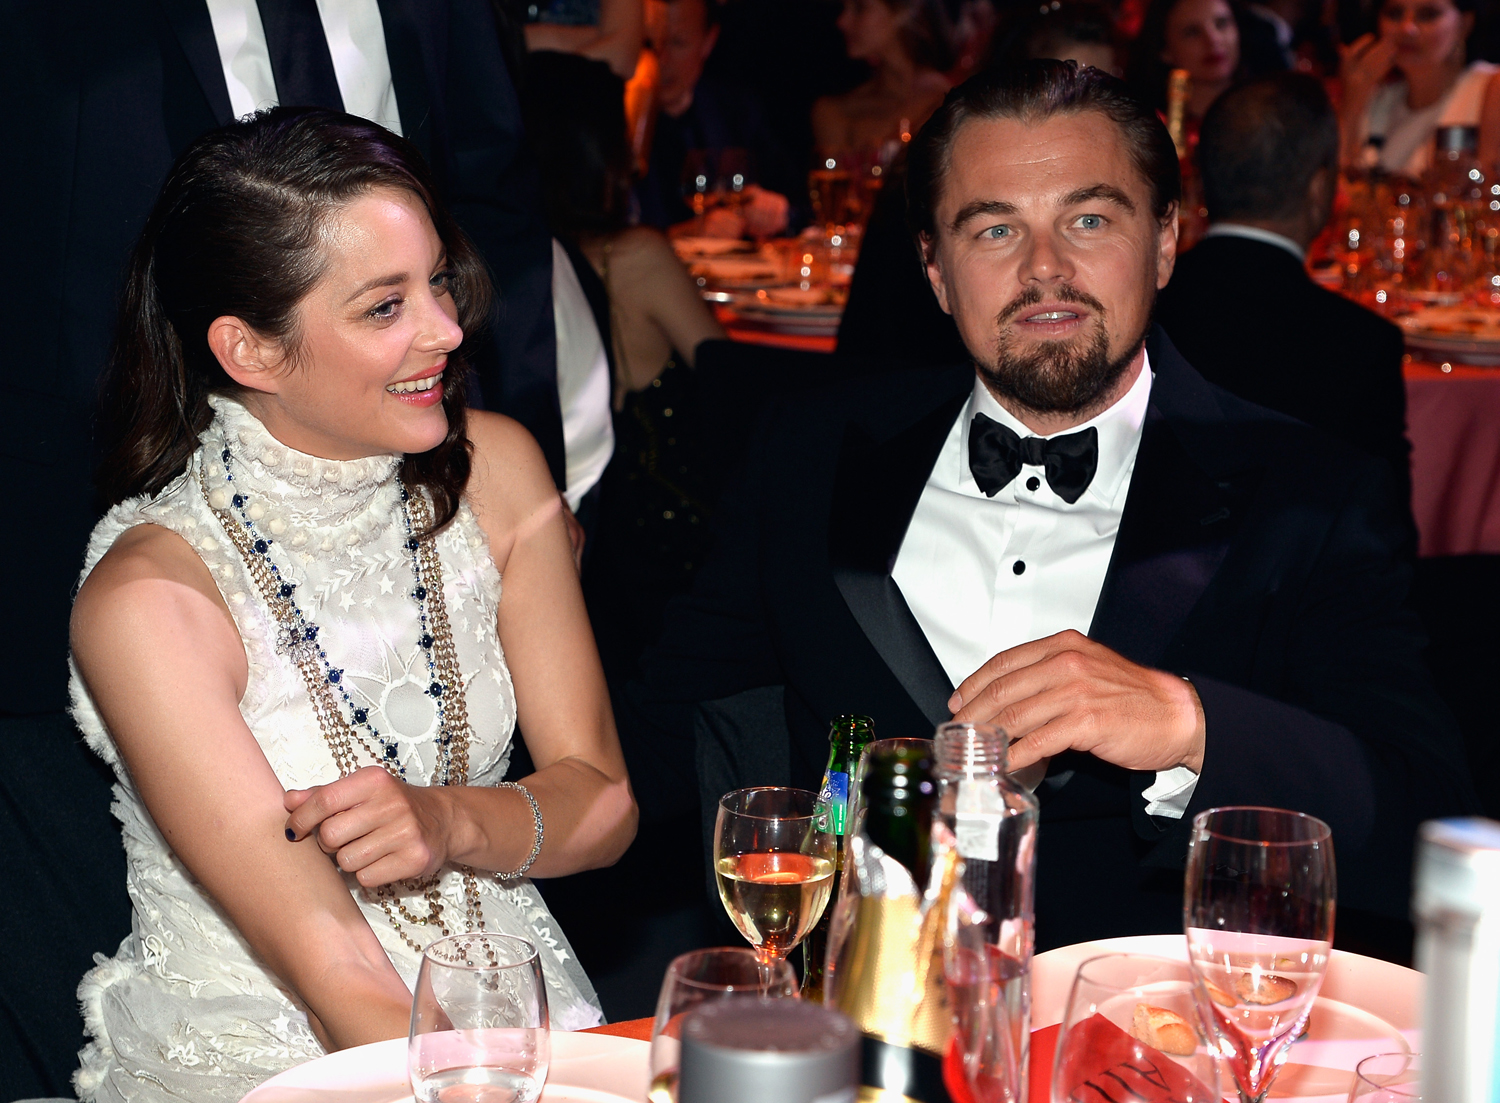 Leonardo DiCaprio and Marion Cotillard attend amfAR's 21st Cinema Against AIDS Gala at Hotel du Cap-Eden-Roc on May 22, 2014 in Cap d'Antibes, France.